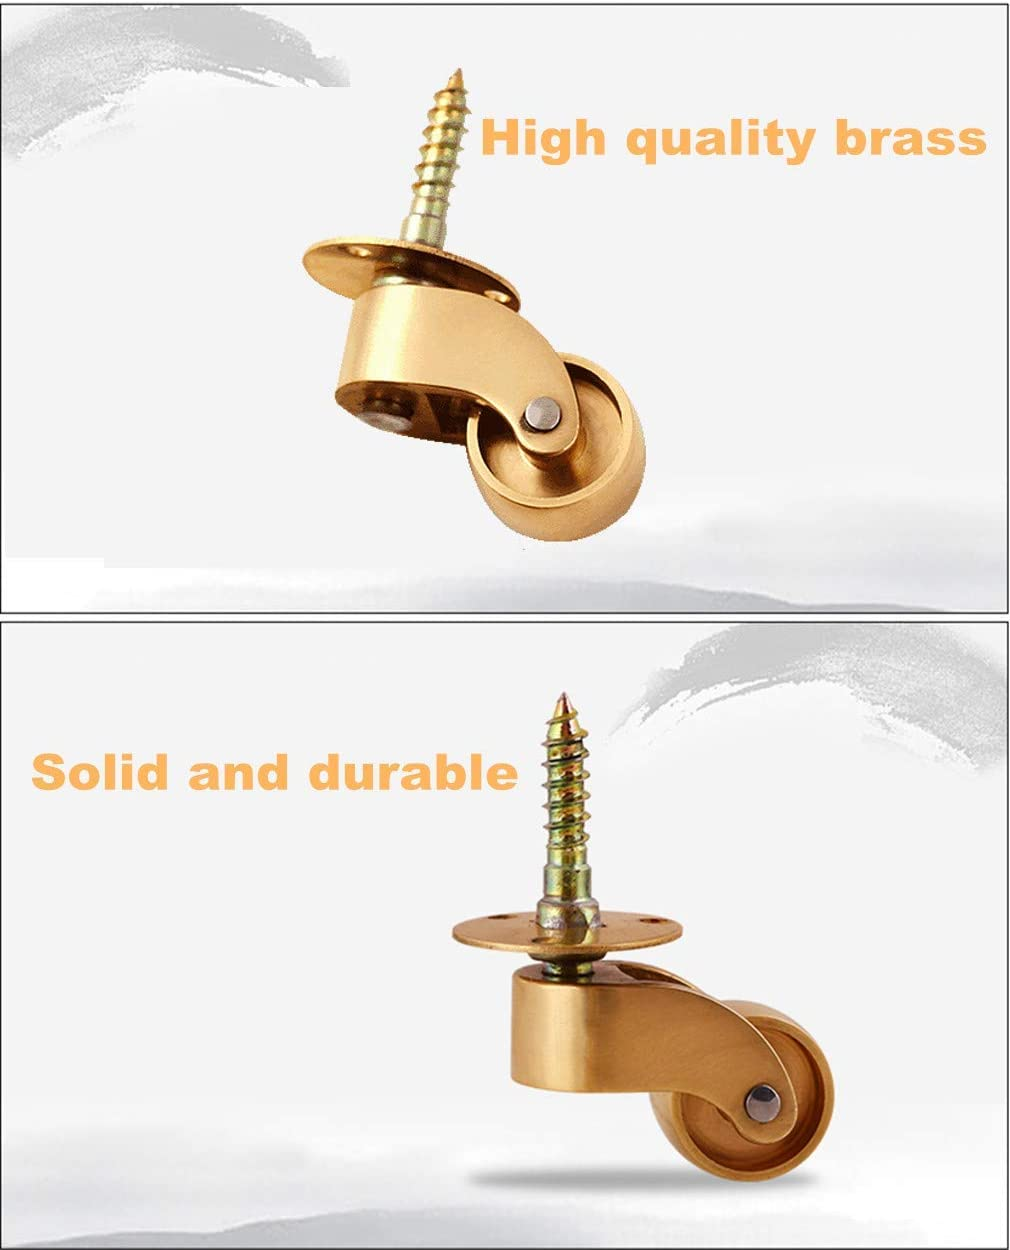 4pcs Pure Brass Swivel Stem Caster Wheels,Furniture Castor,Load Capacity 100kg,Wheel Diameter 22mm,with Threaded Rod,Suitable for Piano Feet,Sofas,Tables,Movable Cabinet